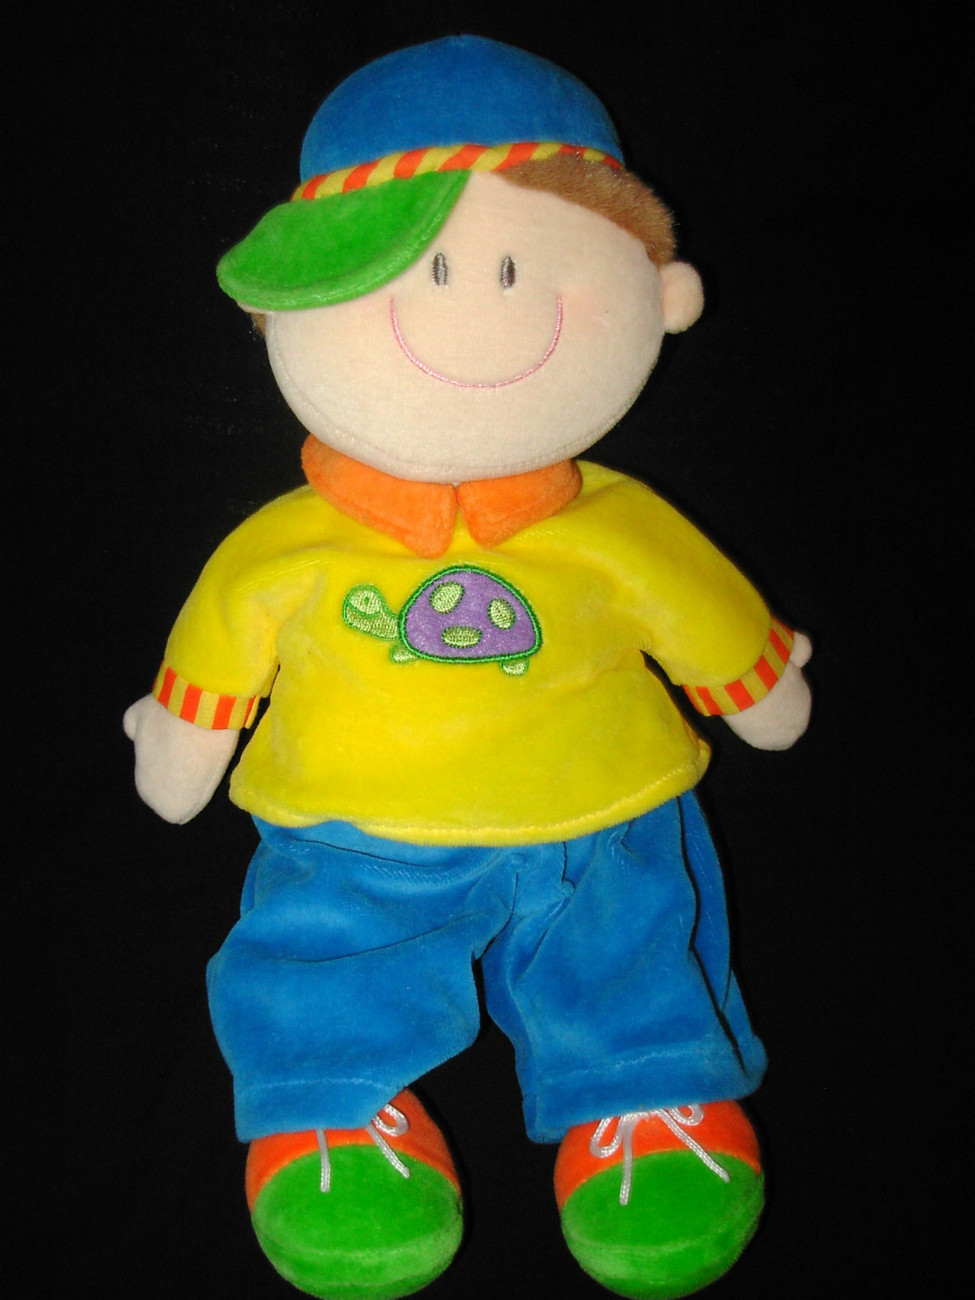 Blue Baby Toys : Russ dollies boy soft doll yellow shirt turtle blue green